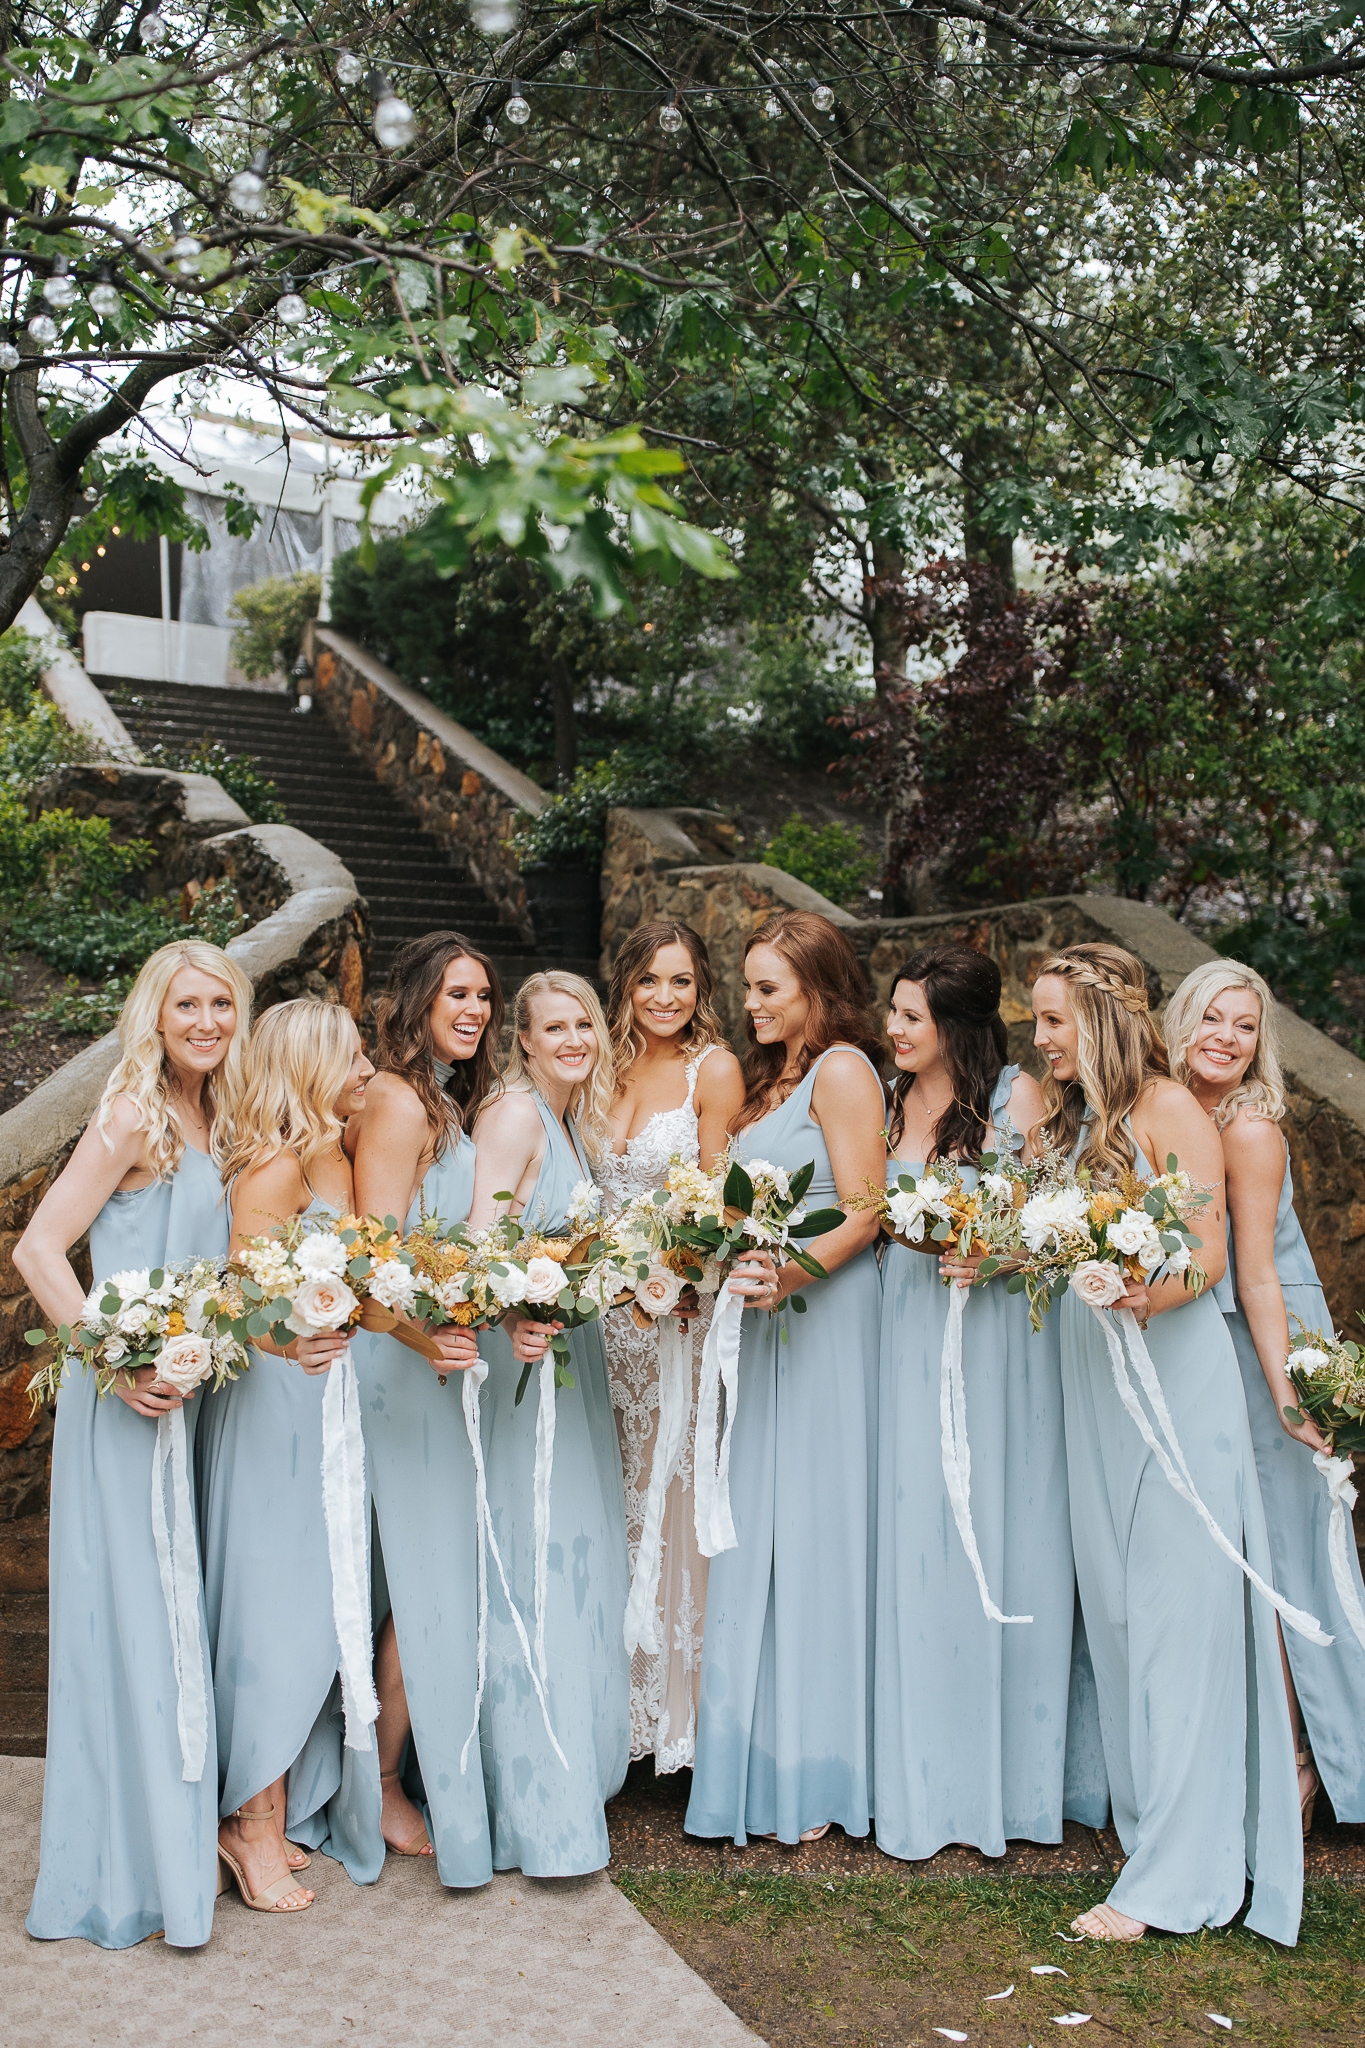 _makennabryleephotography (20 of 50).jpg